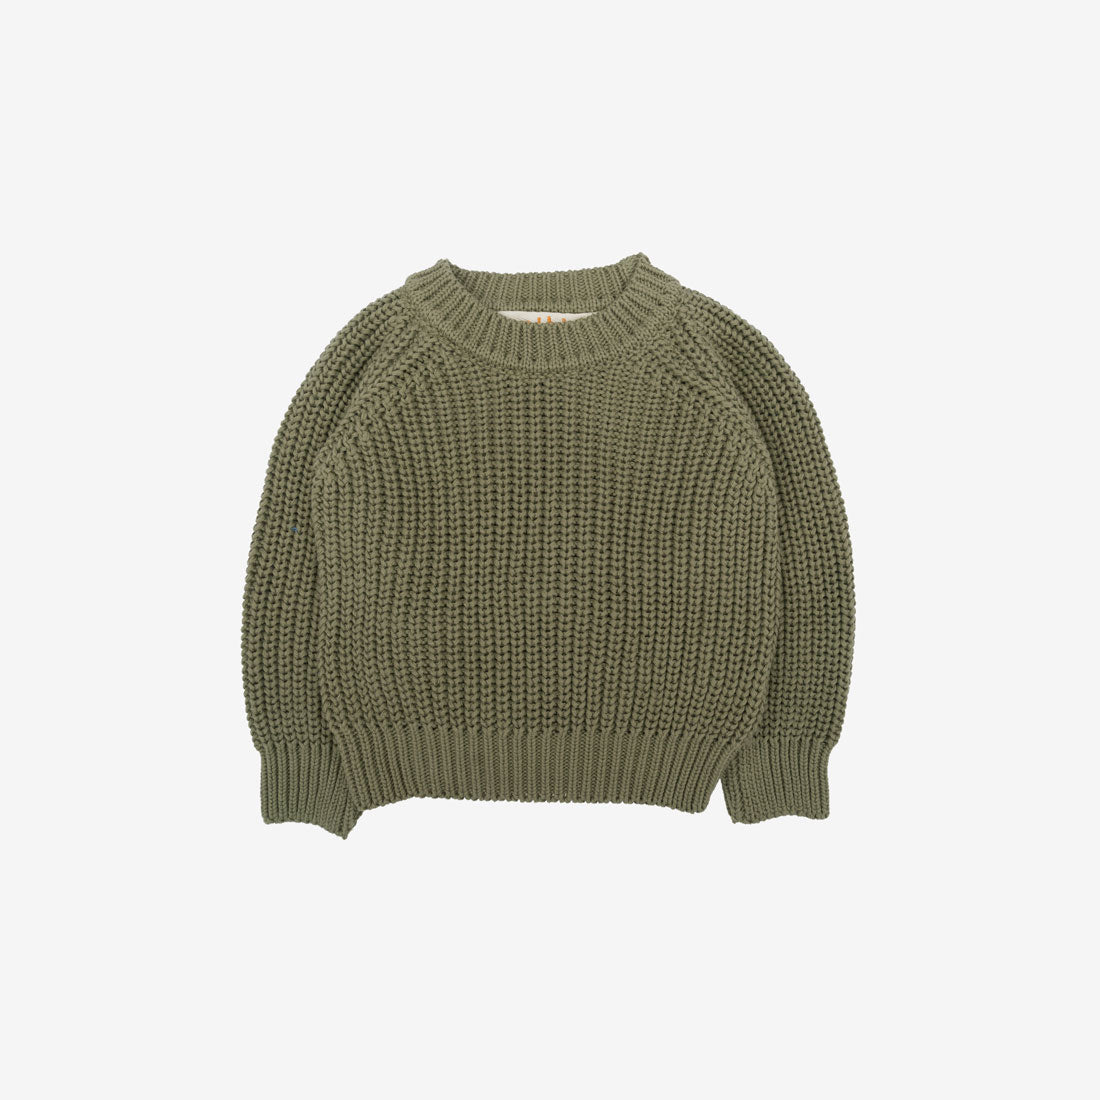 Hiro Sweater in Organic Pima Knit - Laurel